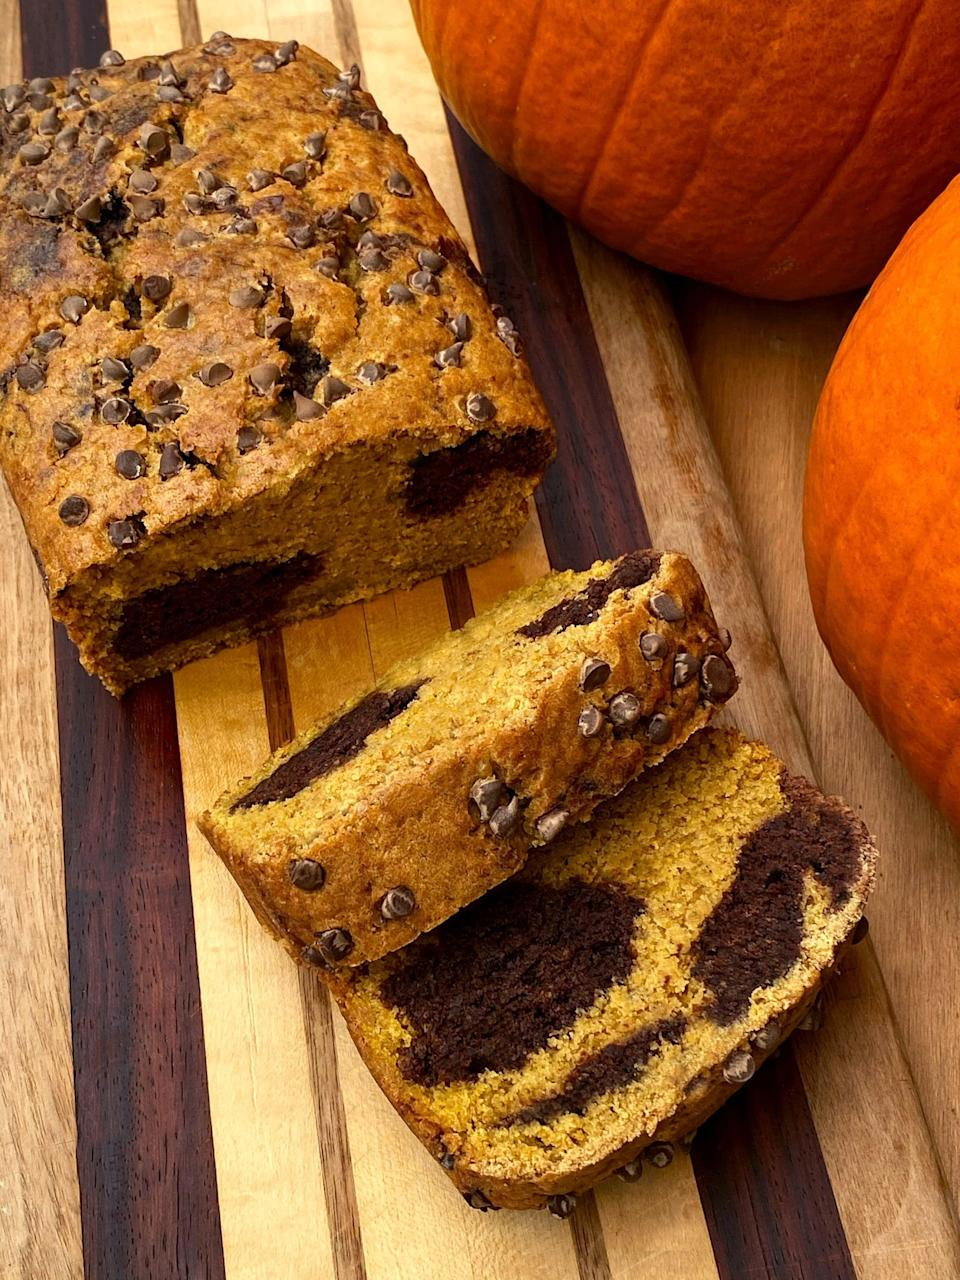 """<p>Made with whole-wheat flour, plant-based protein powder, and pumpkin puree, this treat offers almost five grams of filling fiber and almost nine grams of protein. Each slice also has just 5.6 grams of sugar, but tastes super sweet.</p> <p><strong>Get the recipe</strong>: <a href=""""https://www.popsugar.com/fitness/vegan-chocolate-marbled-pumpkin-protein-bread-47927032"""" class=""""link rapid-noclick-resp"""" rel=""""nofollow noopener"""" target=""""_blank"""" data-ylk=""""slk:vegan chocolate-marbled pumpkin protein bread"""">vegan chocolate-marbled pumpkin protein bread</a></p>"""